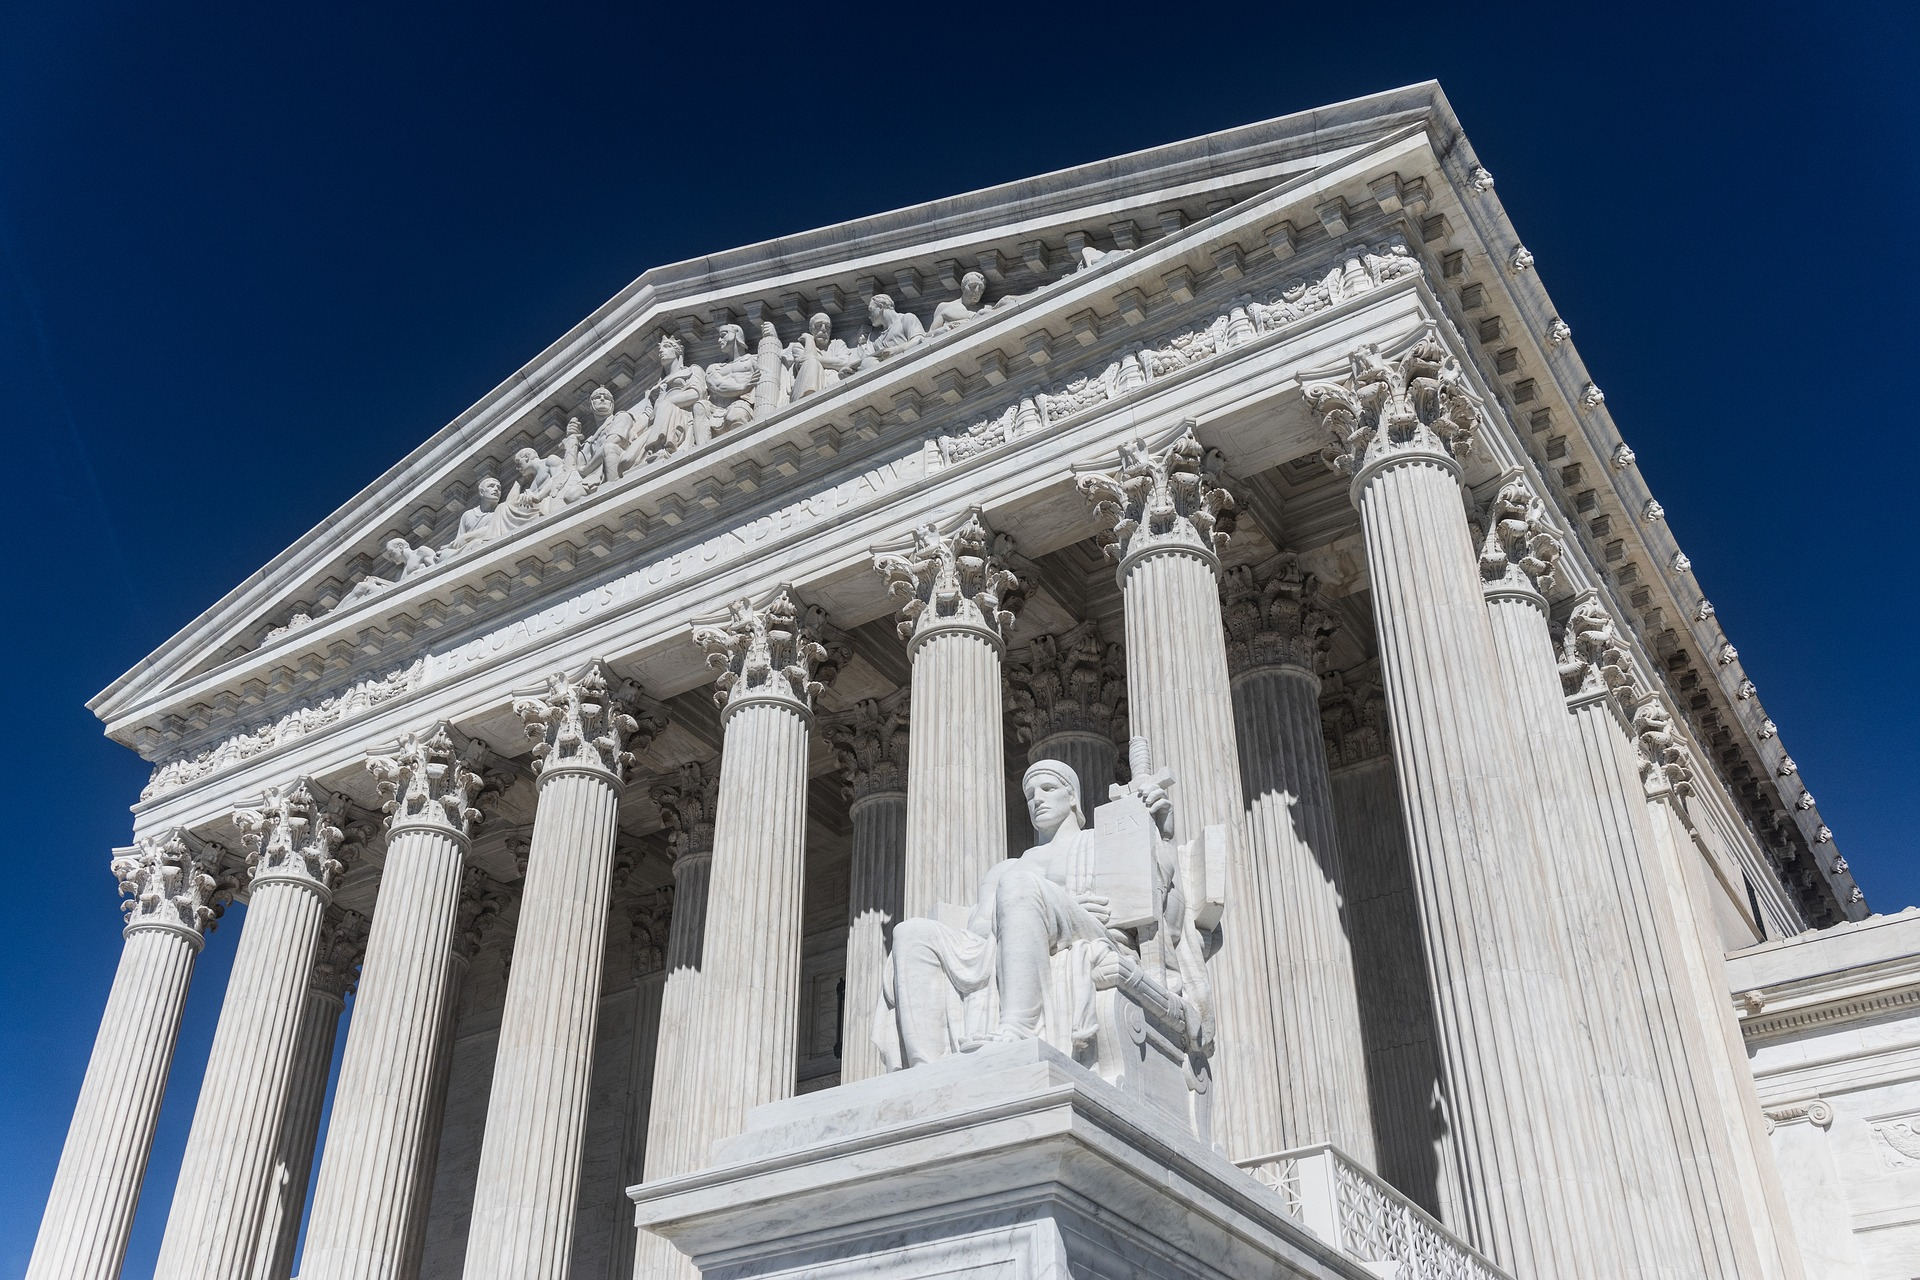 us-supreme-court-building-2225766_1920.jpg